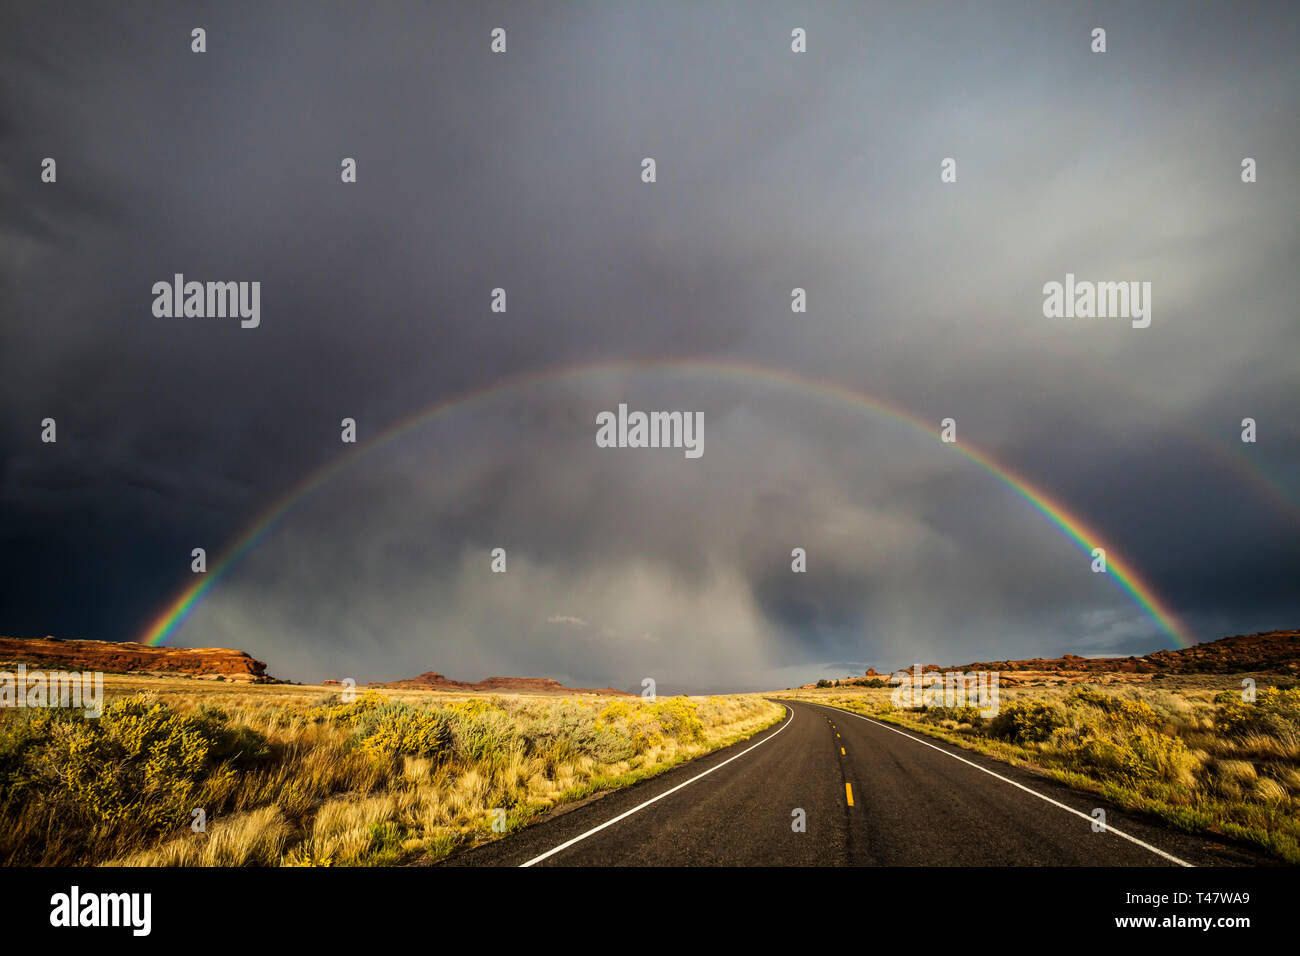 A full rainbow and thuderstorm clouds over Scenic Highway 211 in Canyonlands National Park, Southeast Utah, USA. Stock Photo